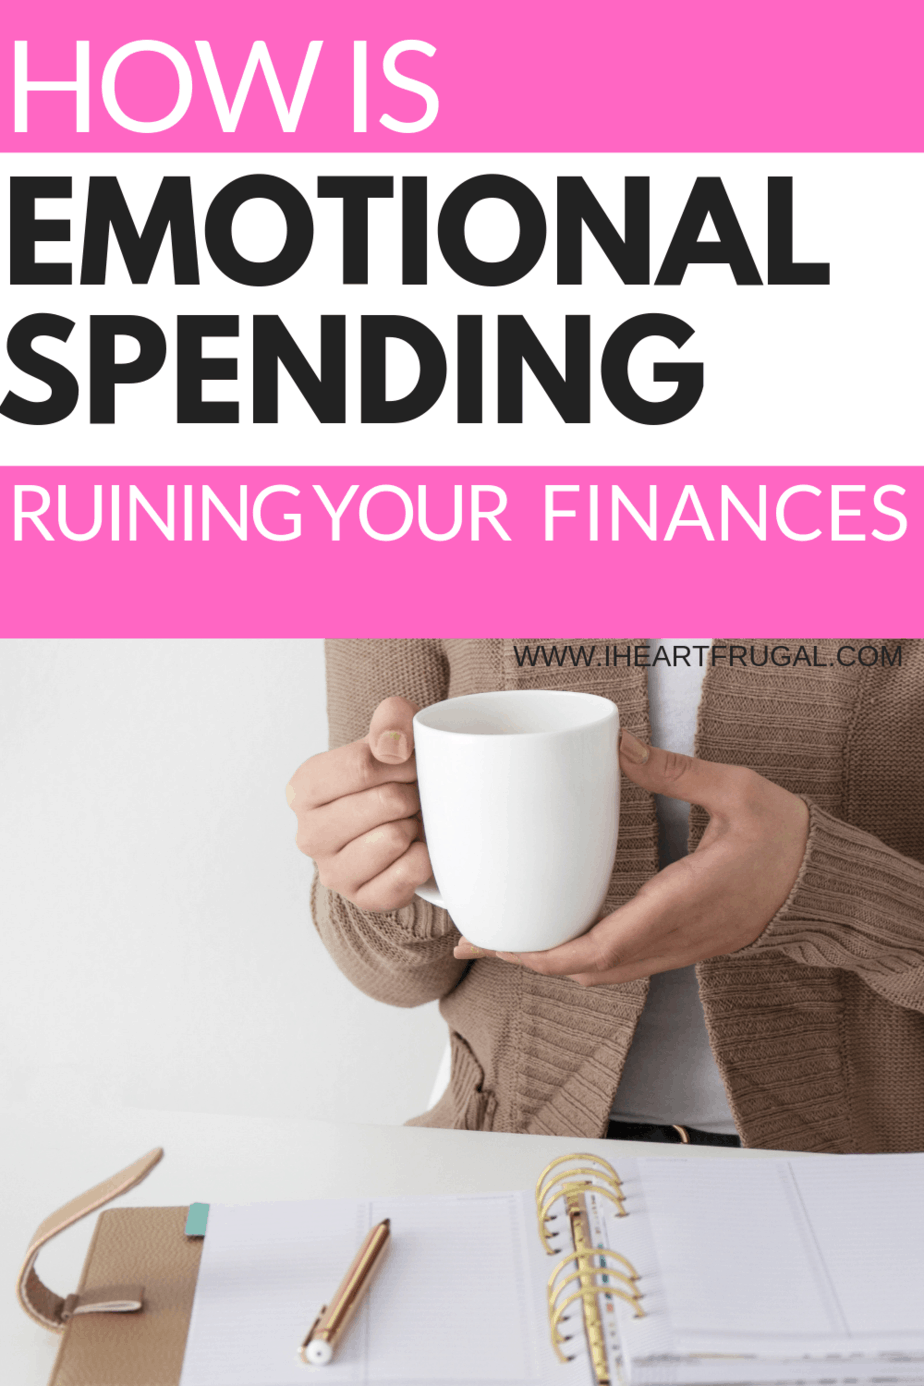 Is Emotional Spending Ruining Your Finances? #personalfinance #savemoney #budgeting